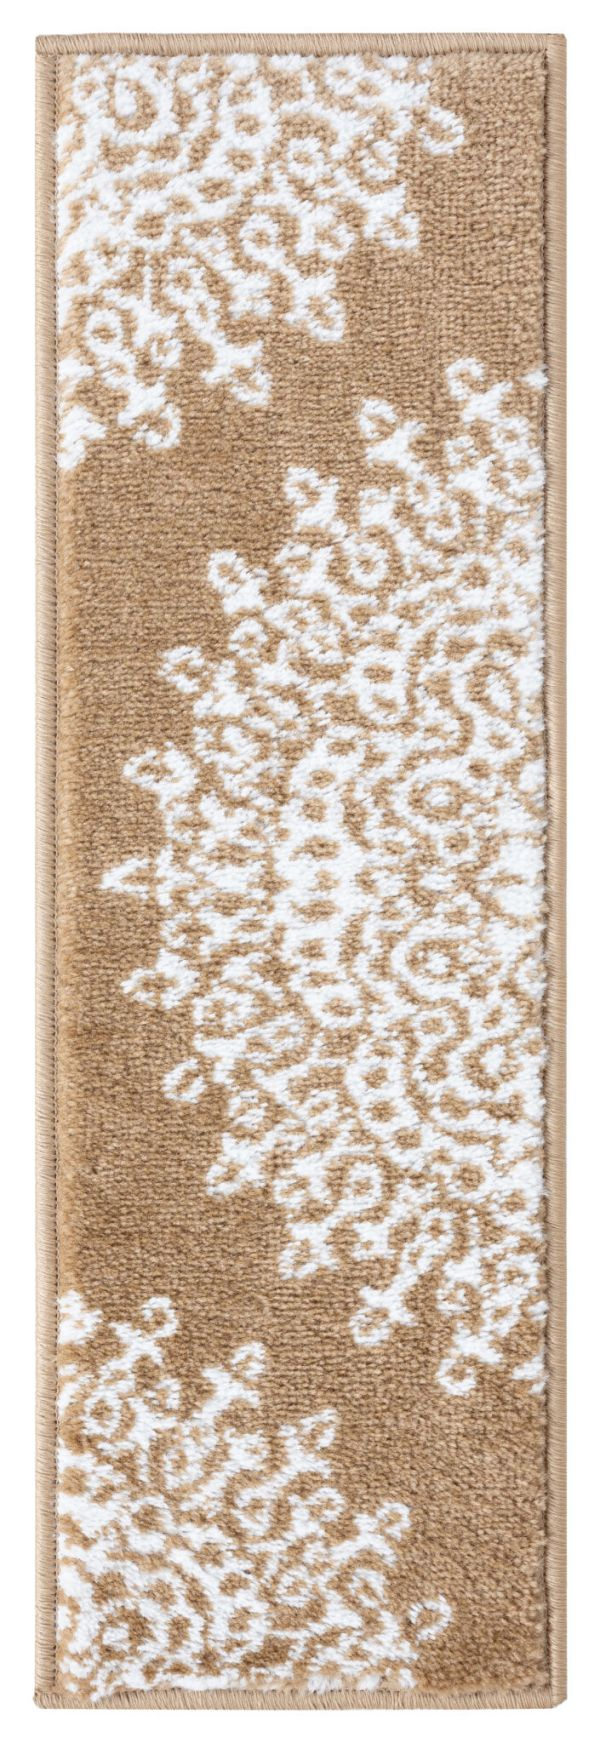 Beverly Rug Soft Rug Stair Treads Medallion Design - Beige